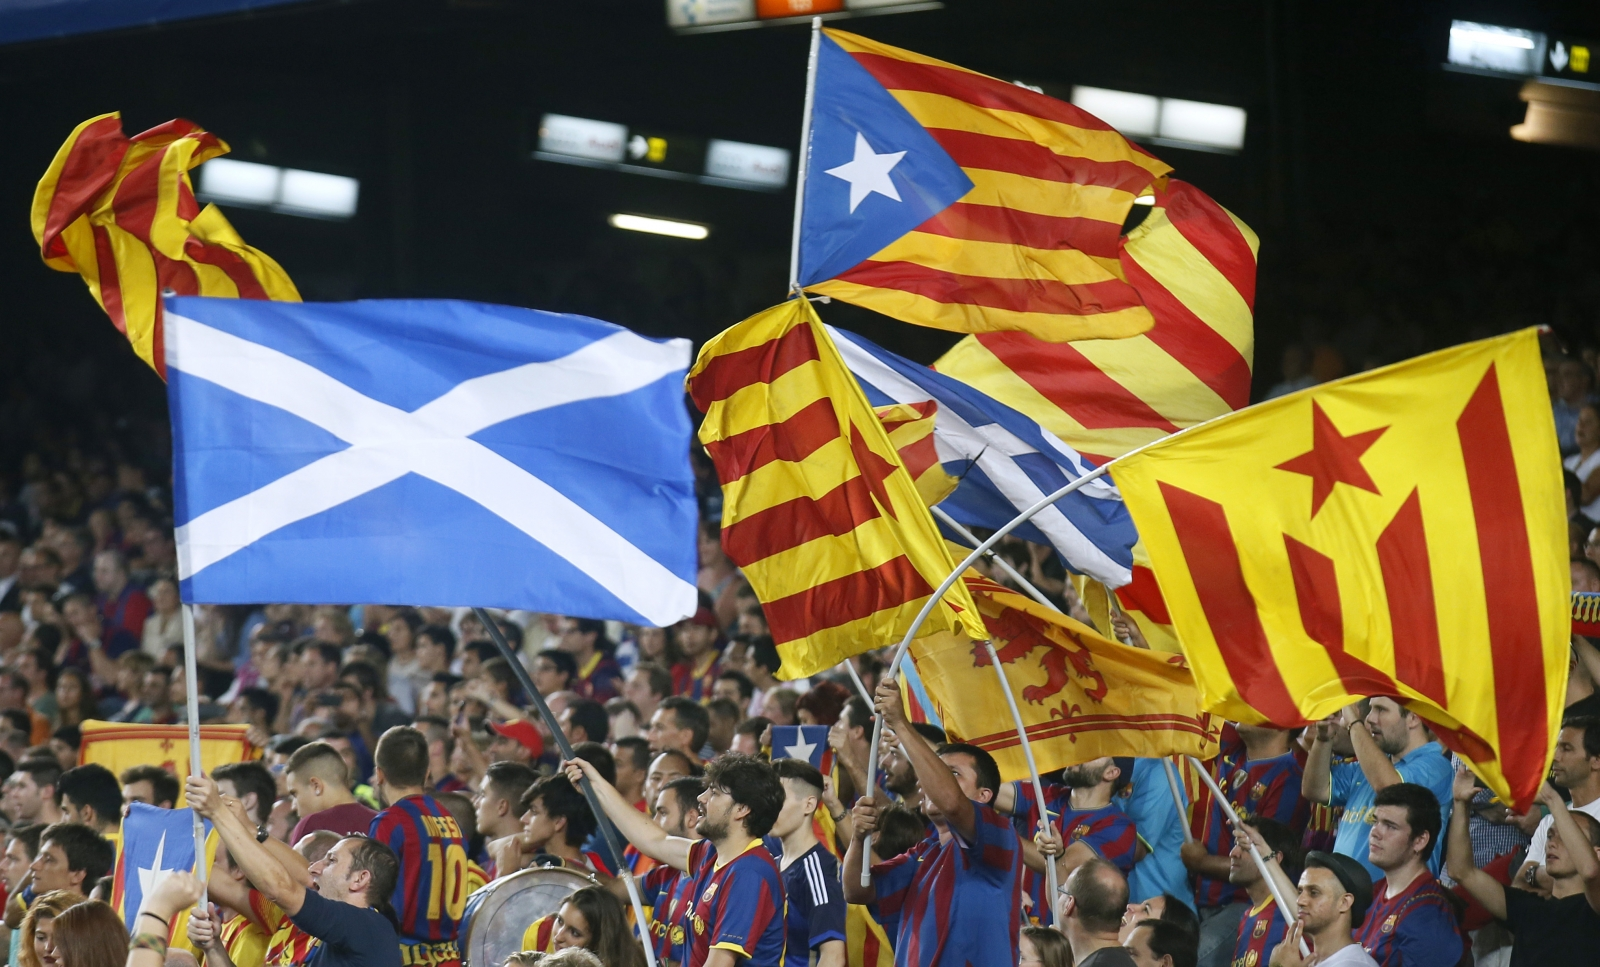 Scottish flag and Catalan flags